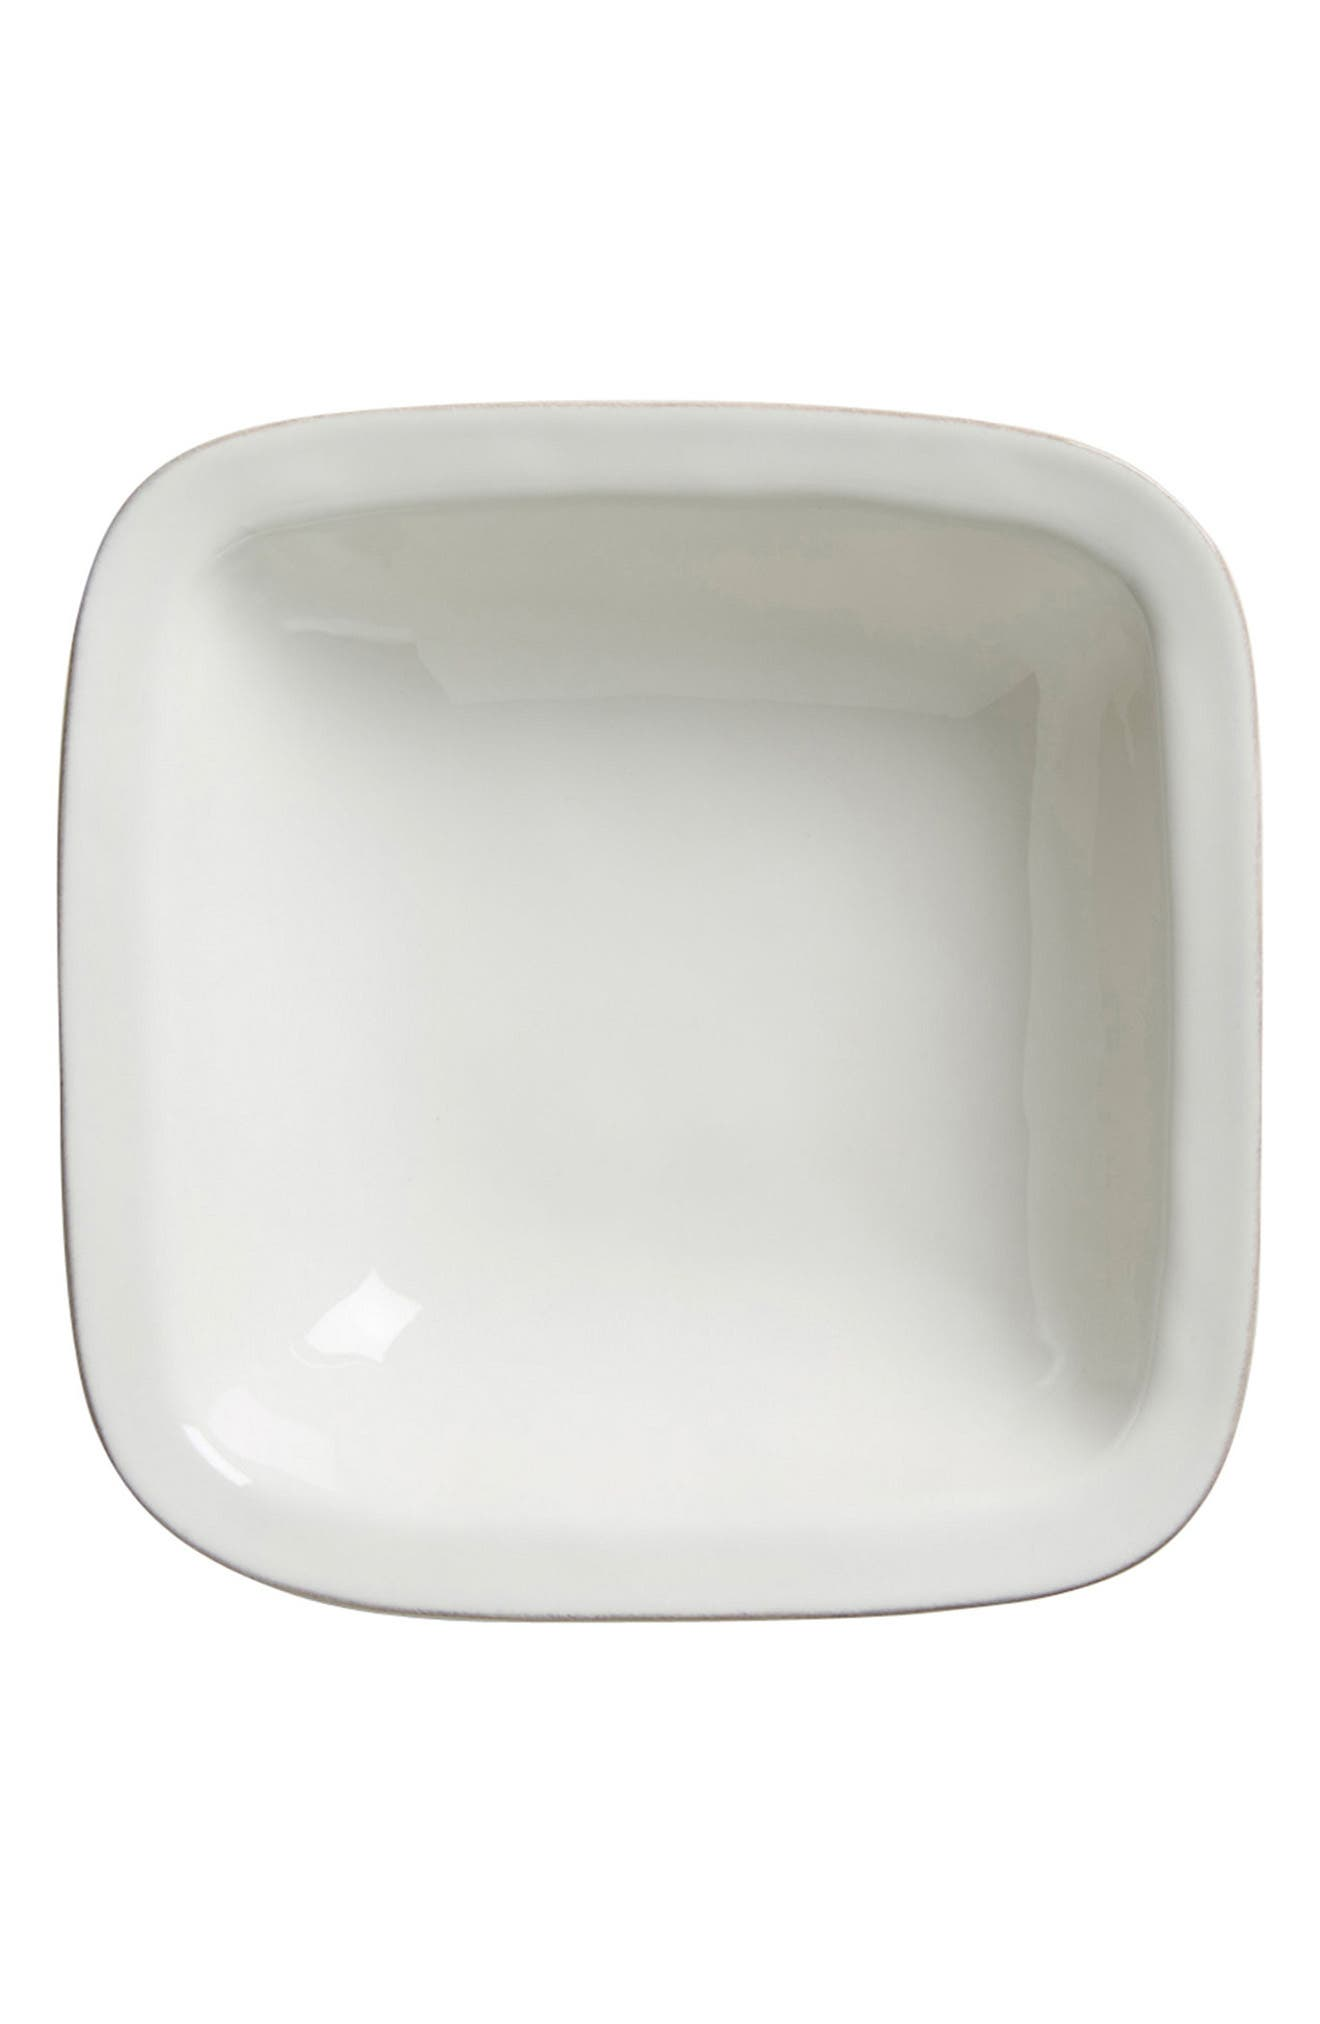 Puro Ceramic Serving Bowl,                             Main thumbnail 1, color,                             Whitewash